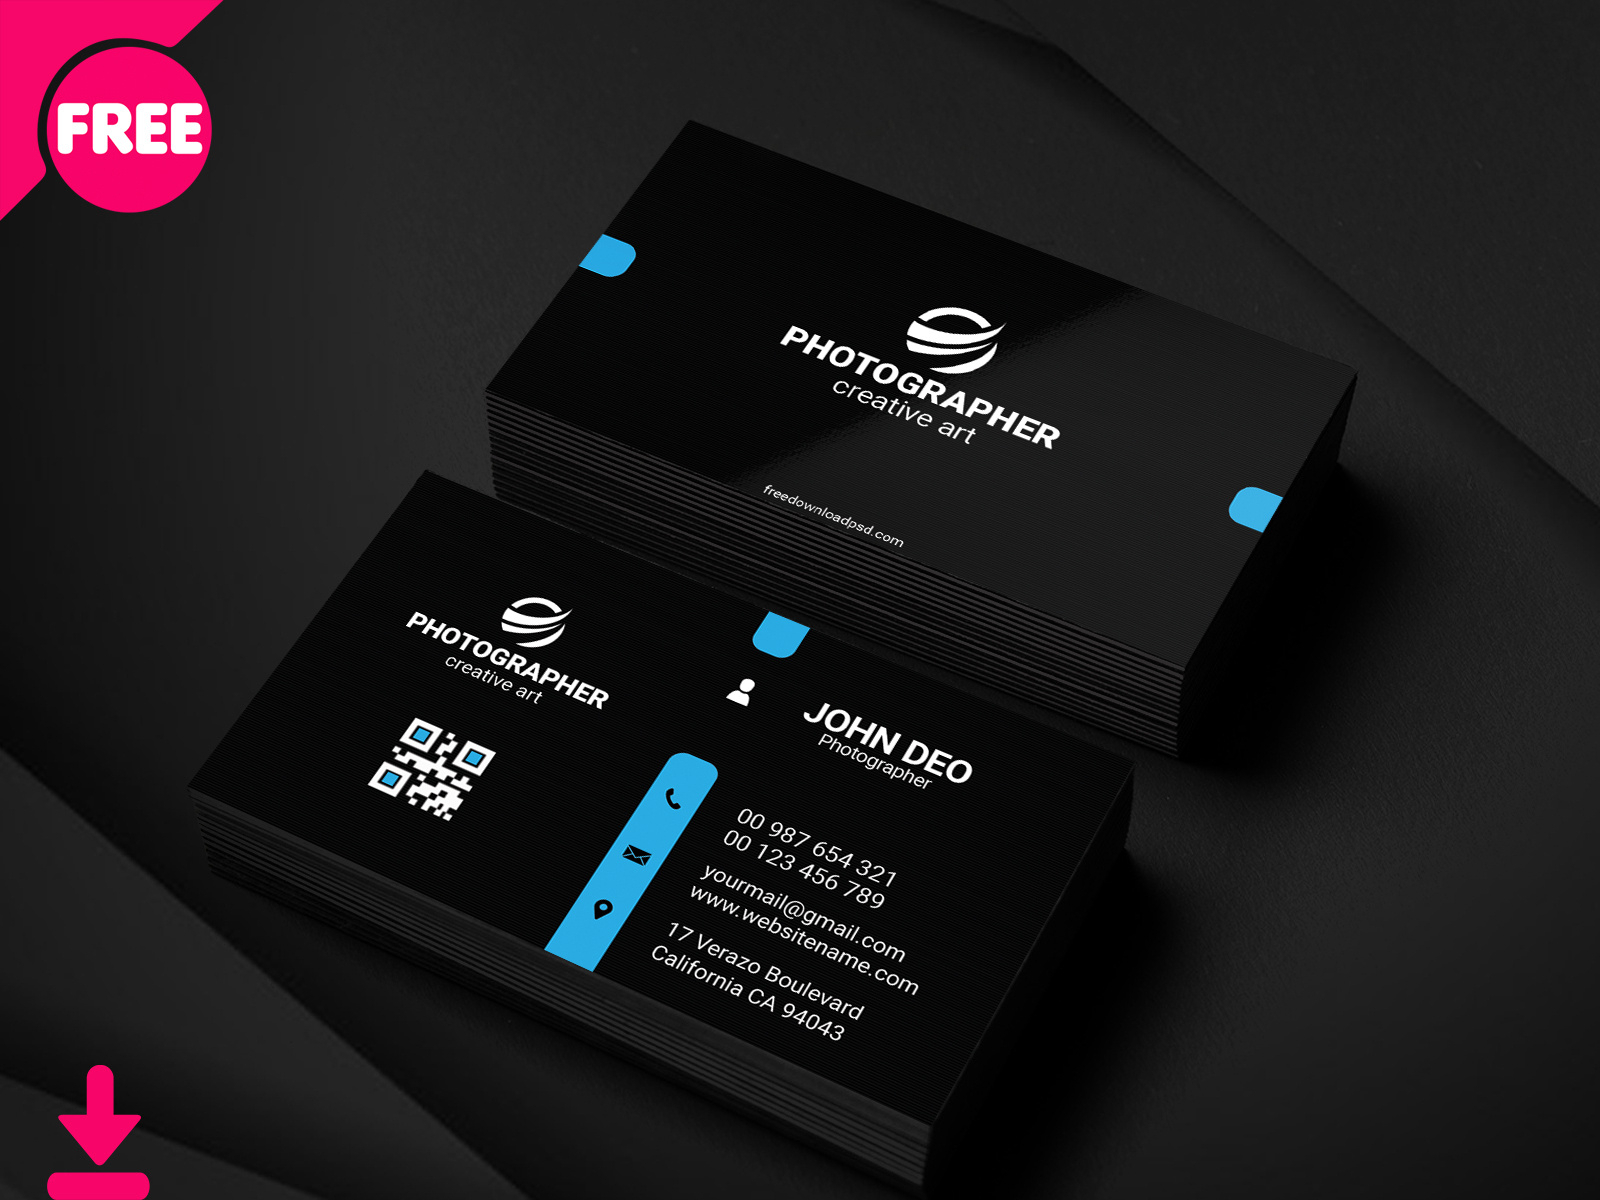 Free Personal Business Card Psd Template Cover   Searchmuzli Regarding Free Personal Business Card Templates